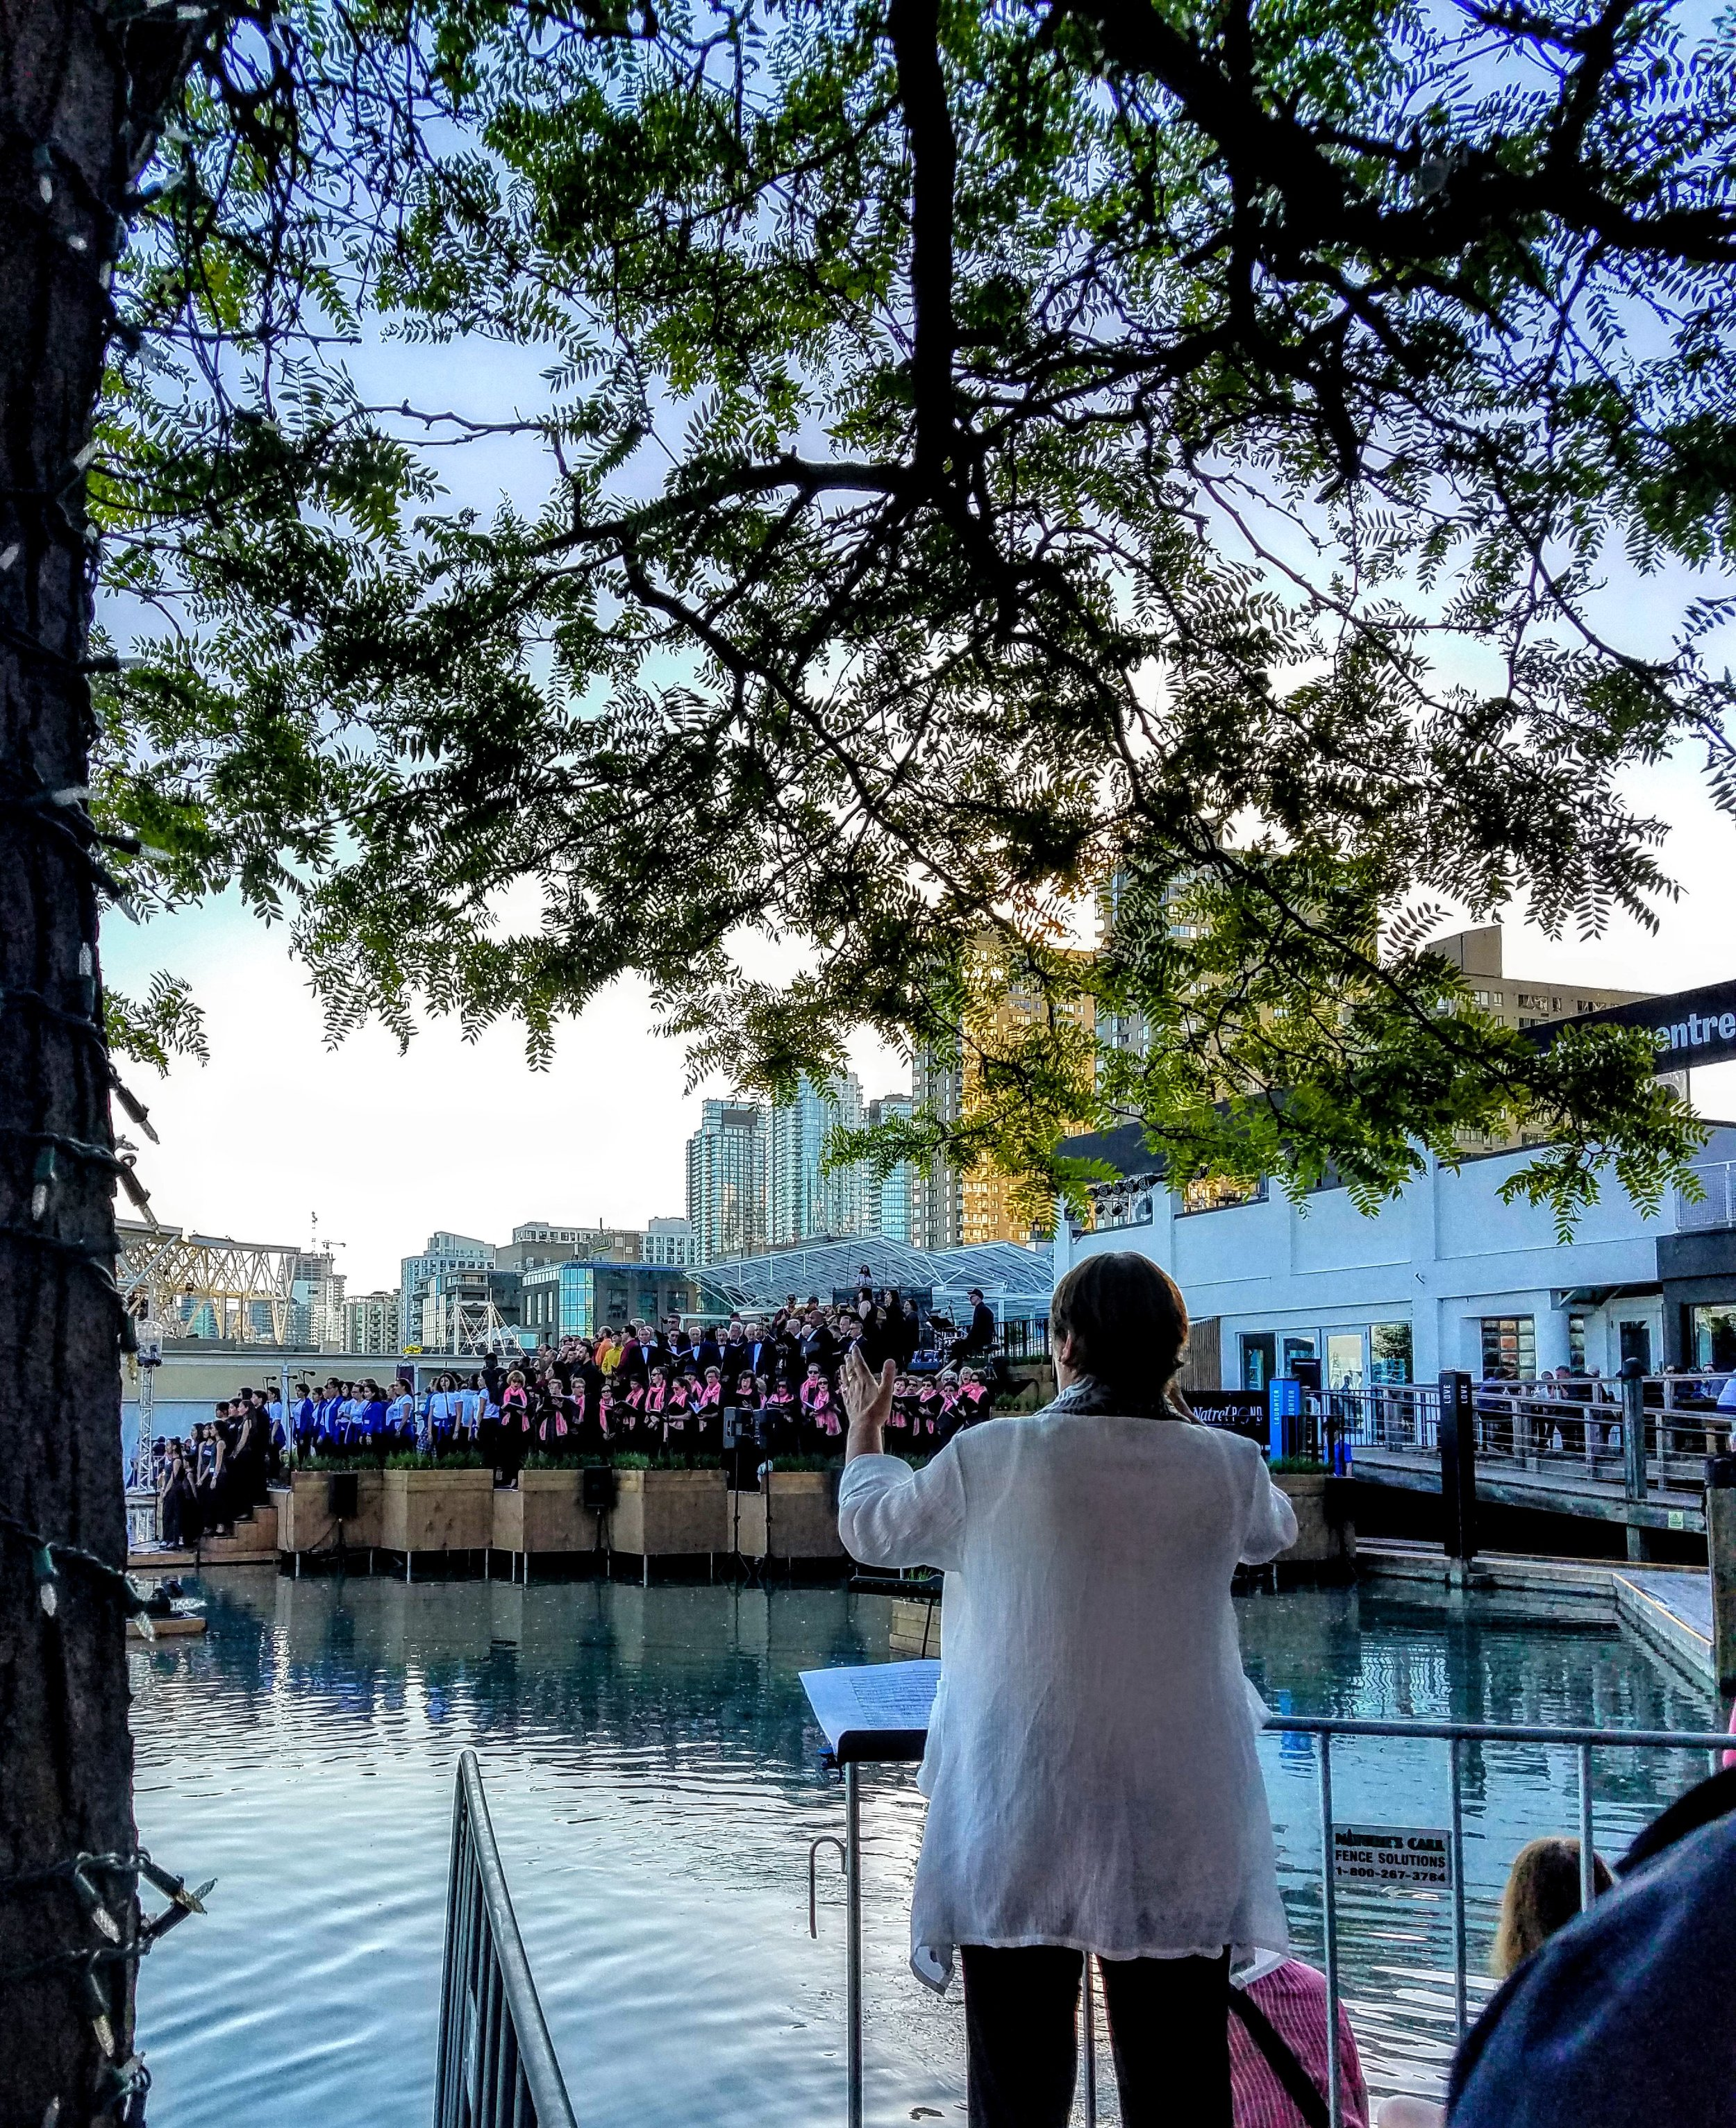 A choral concert at the waterfront at twilight